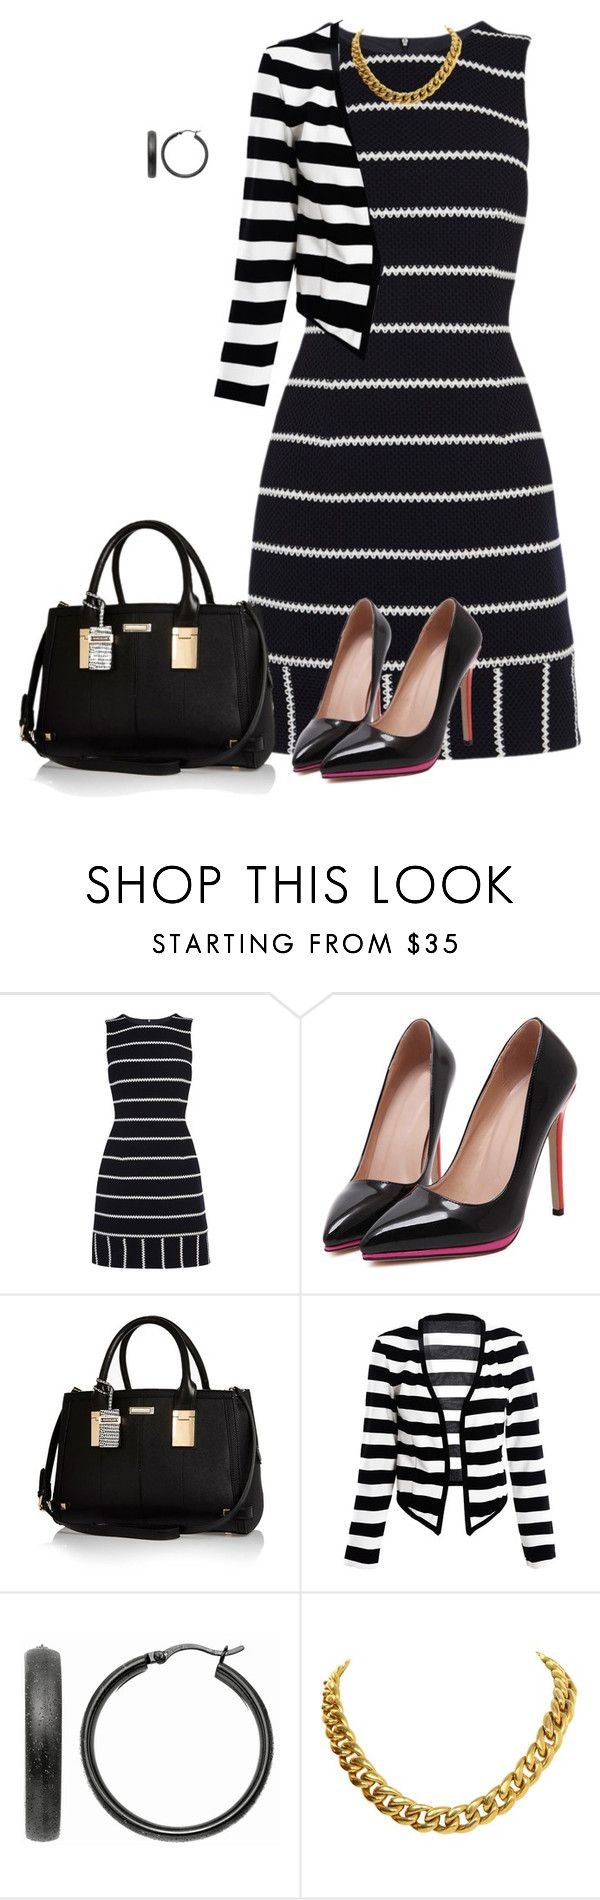 """""""mixup work look"""" by kristie-payne ❤ liked on Polyvore featuring Karen Millen, River Island, Mondevio, CÉLINE, women's clothing, women's fashion, women, female, woman and misses"""